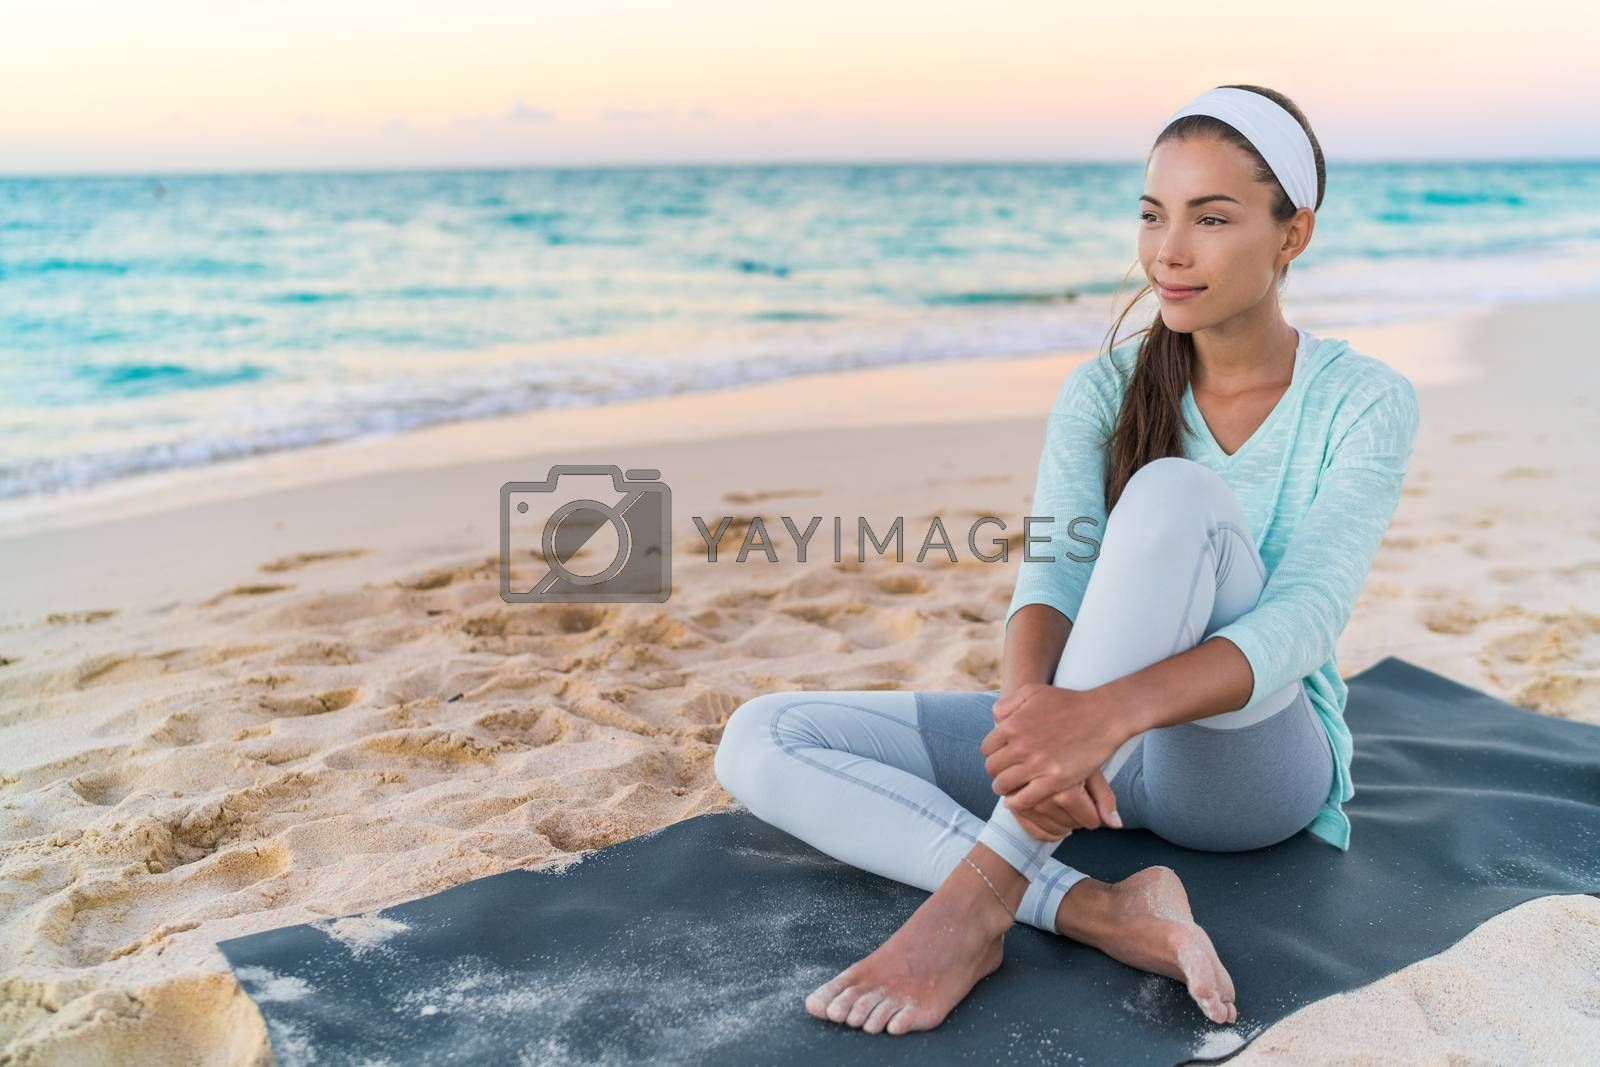 Yoga beach woman relaxing on fitness mat after workout. Fit Asian fitness athlete girl doing exercise in activewear at sunset or sunrise. Mindfulness healthy lifestyle.